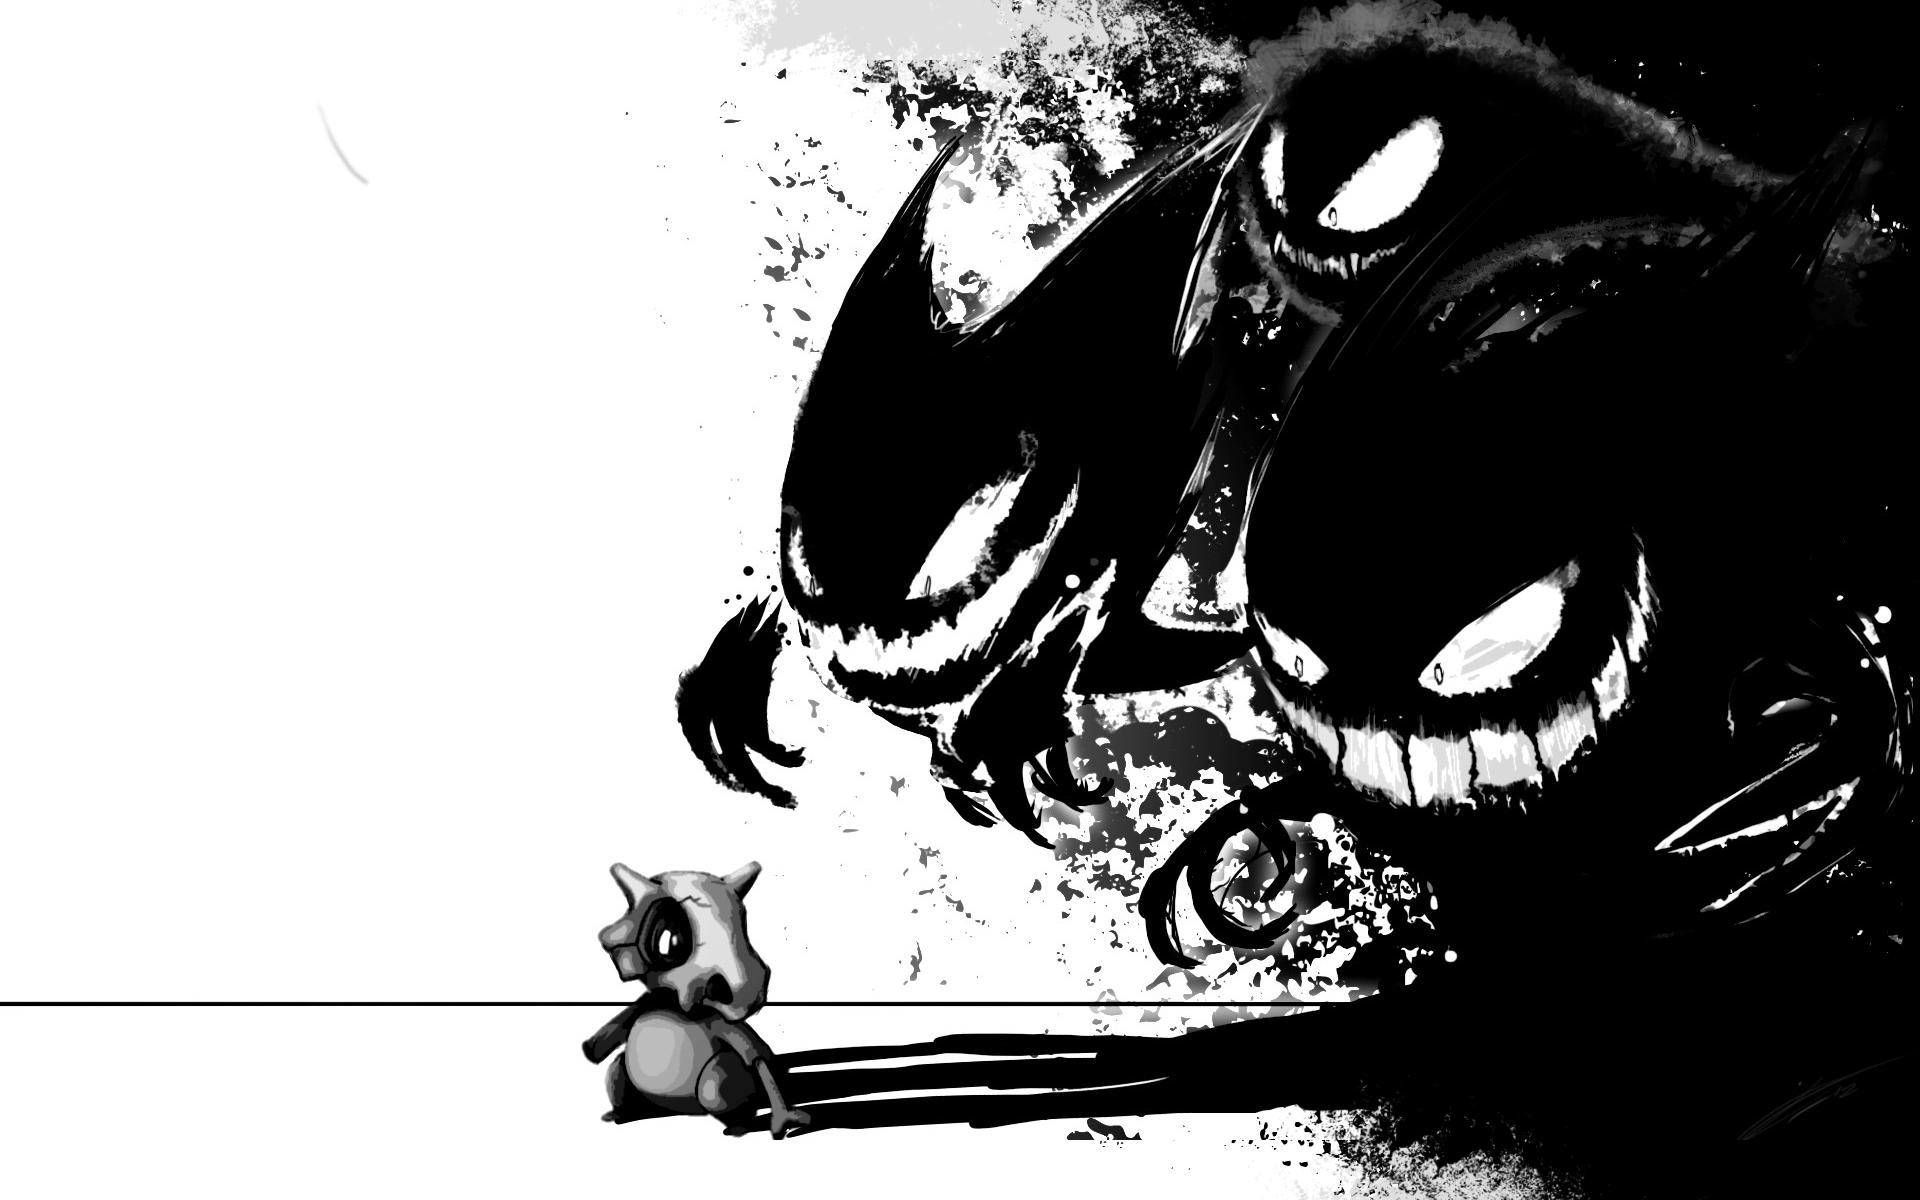 Stalking Cubone Wallpapers Gengar Stalking Cubone Myspace Backgrounds 1920x1200